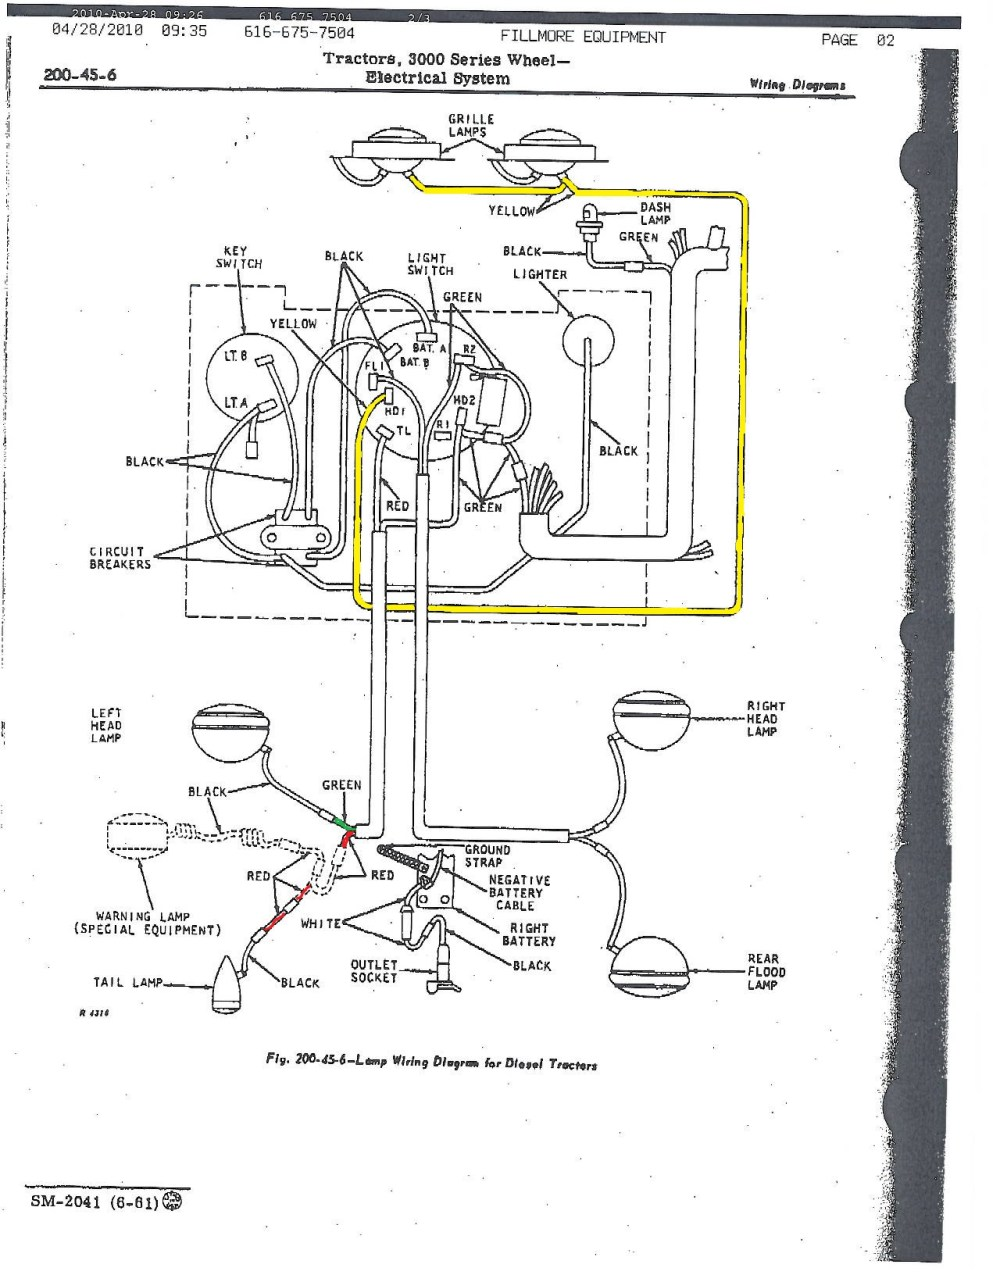 medium resolution of  jd starting circuits colored jpg and jd wire paths jpg are perfectly fine diagrams from john deere if you buy their wiring harnesses for 550 plus